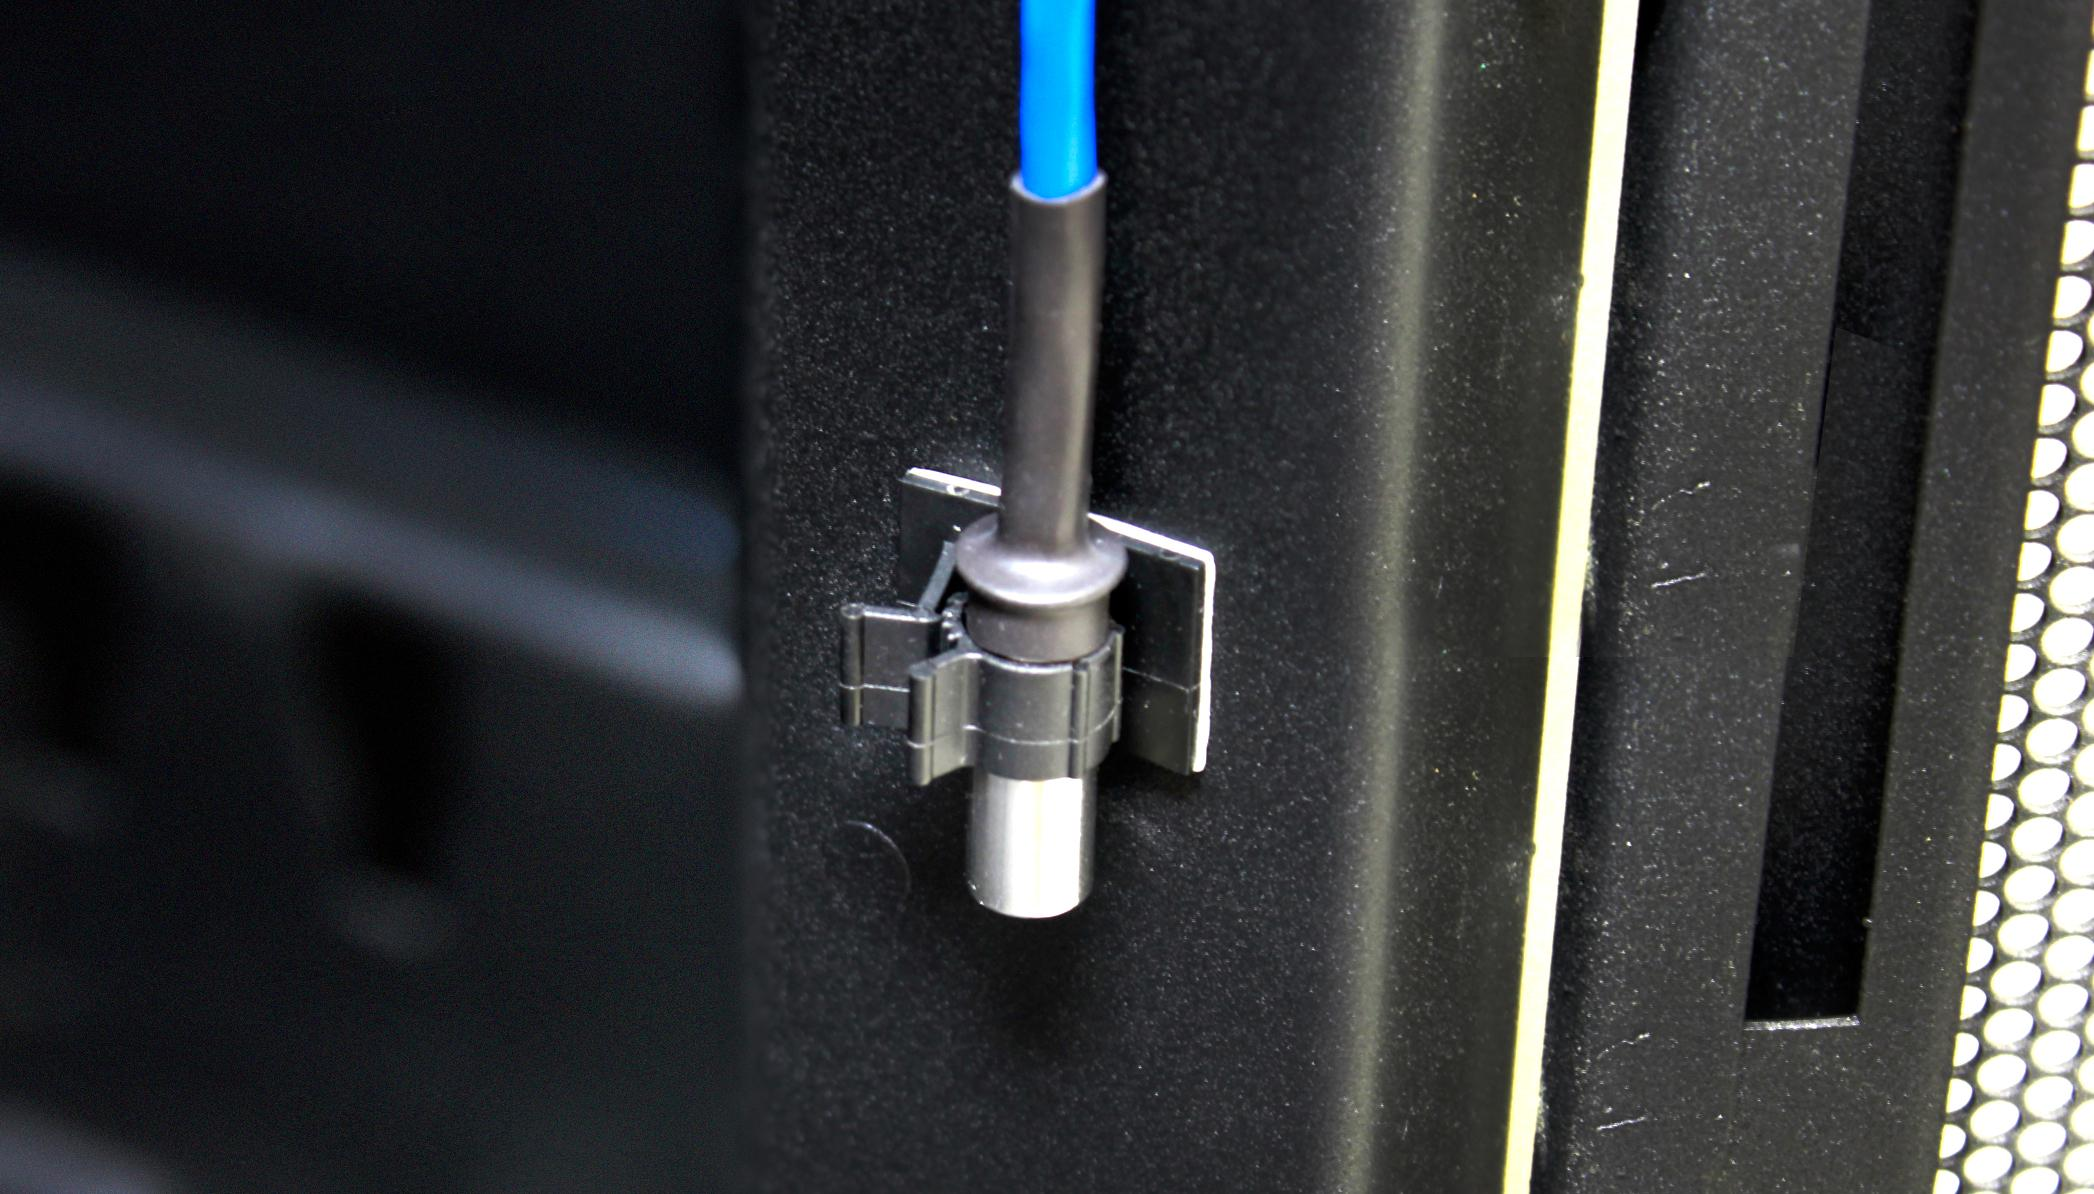 AKCP Temperature Sensors are easily installed using the included free sensor clips.